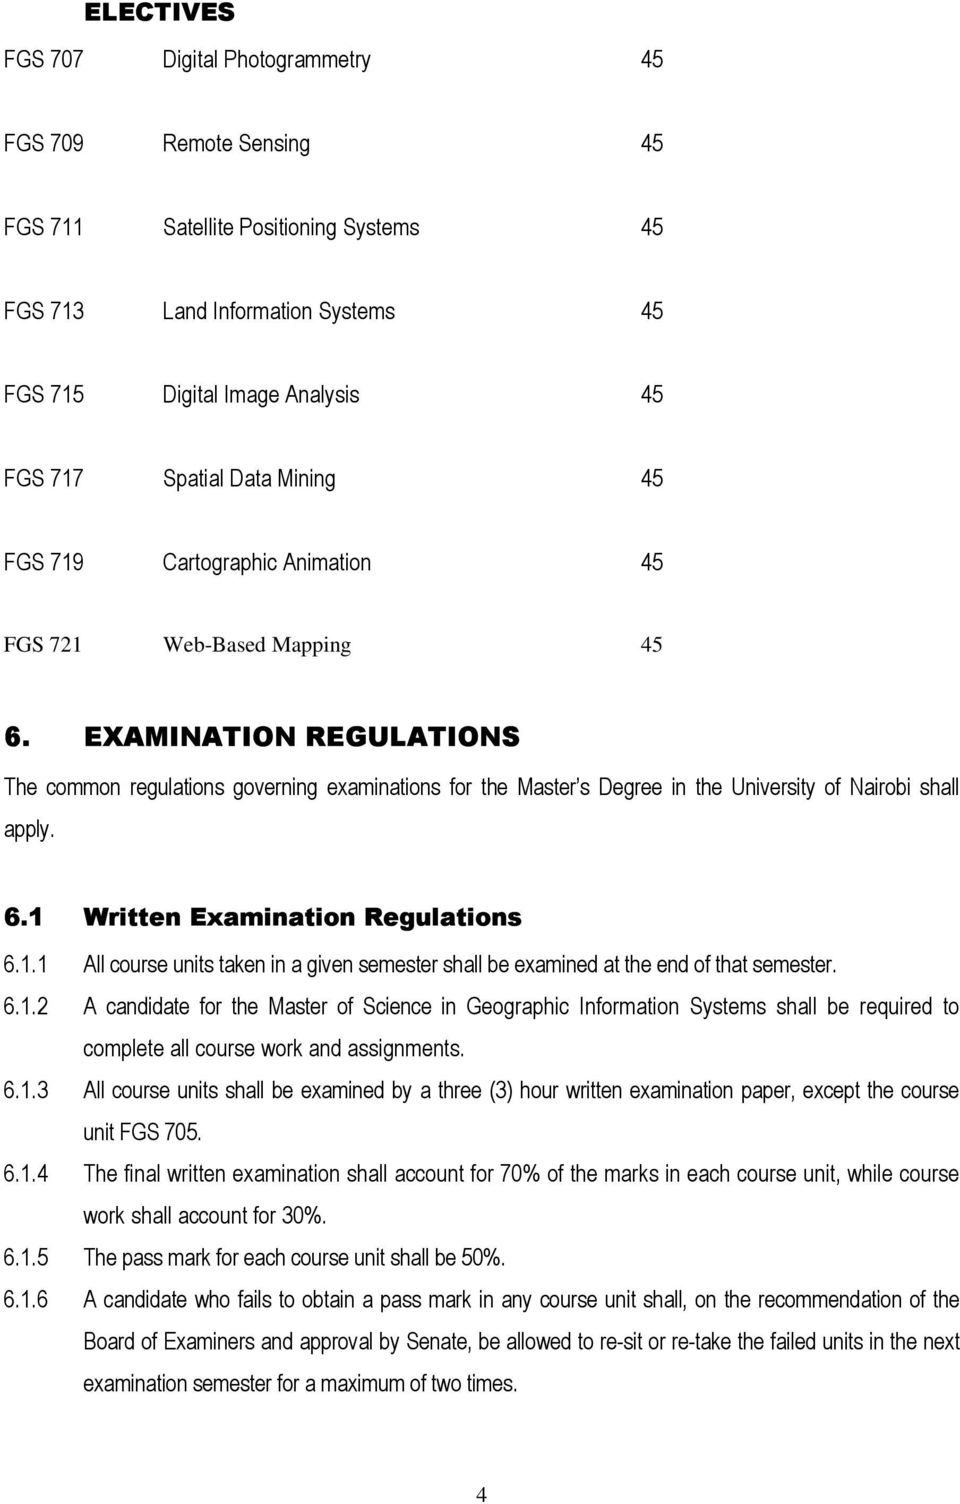 EXAMINATION REGULATIONS The common regulations governing examinations for the Master s Degree in the University of Nairobi shall apply. 6.1